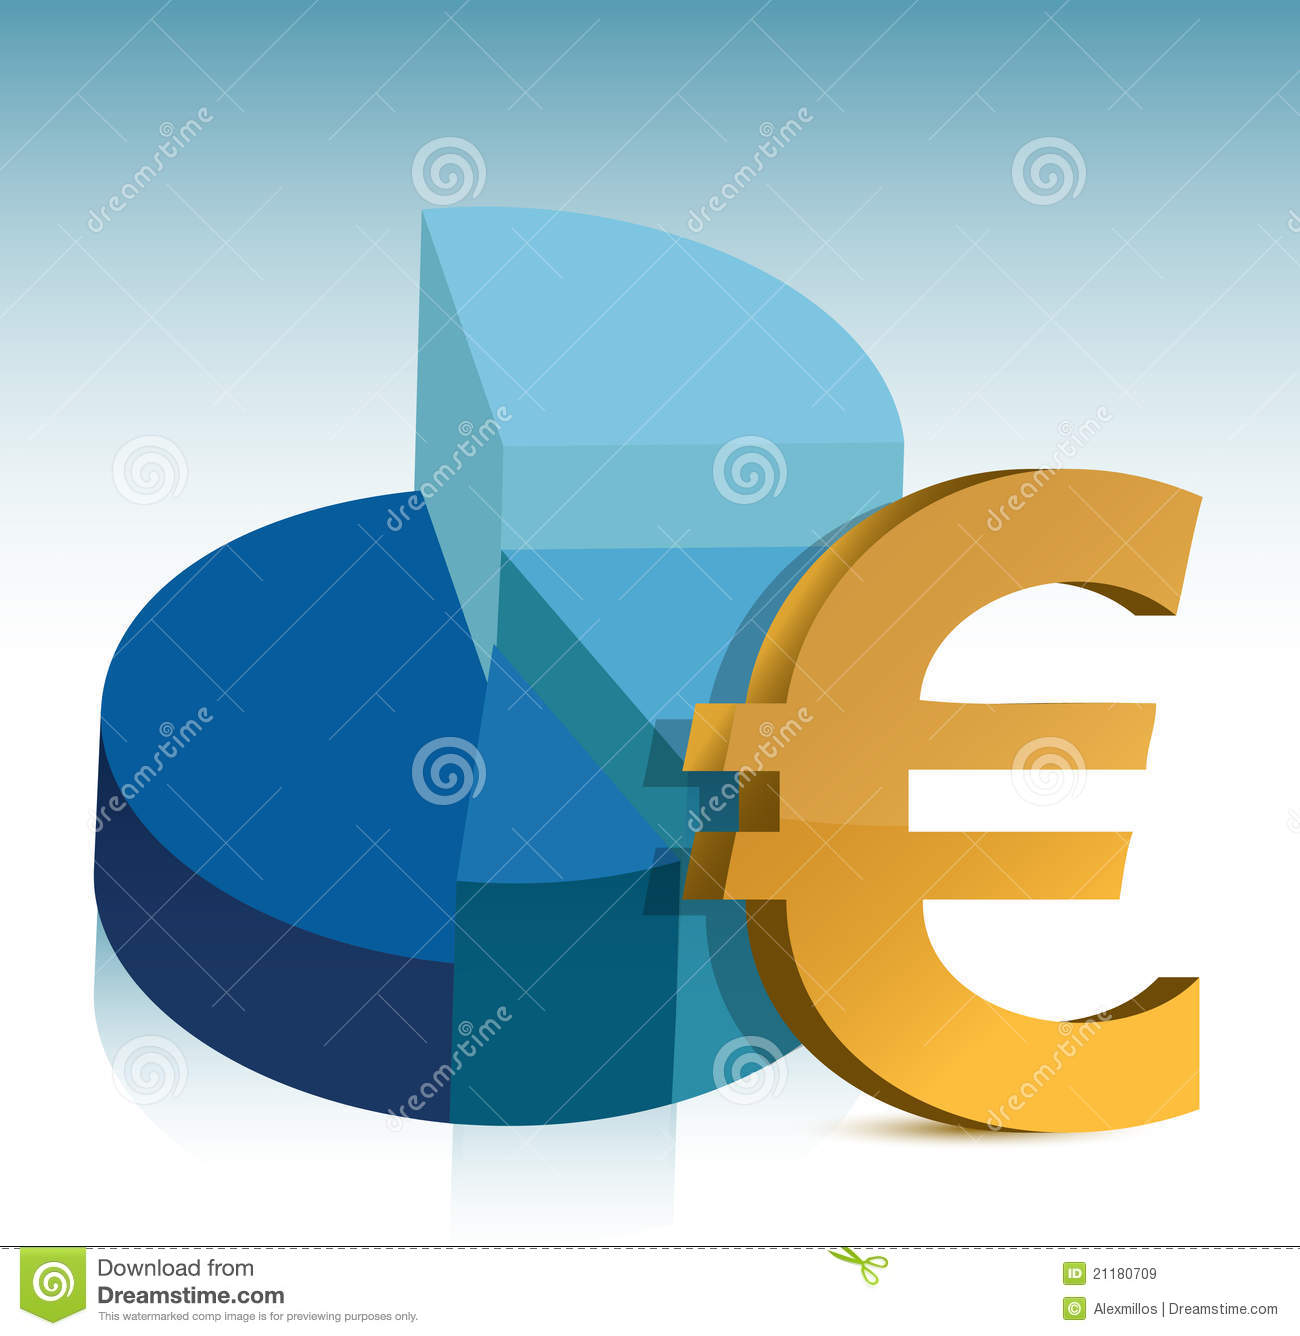 Pie chart euro sign illustration